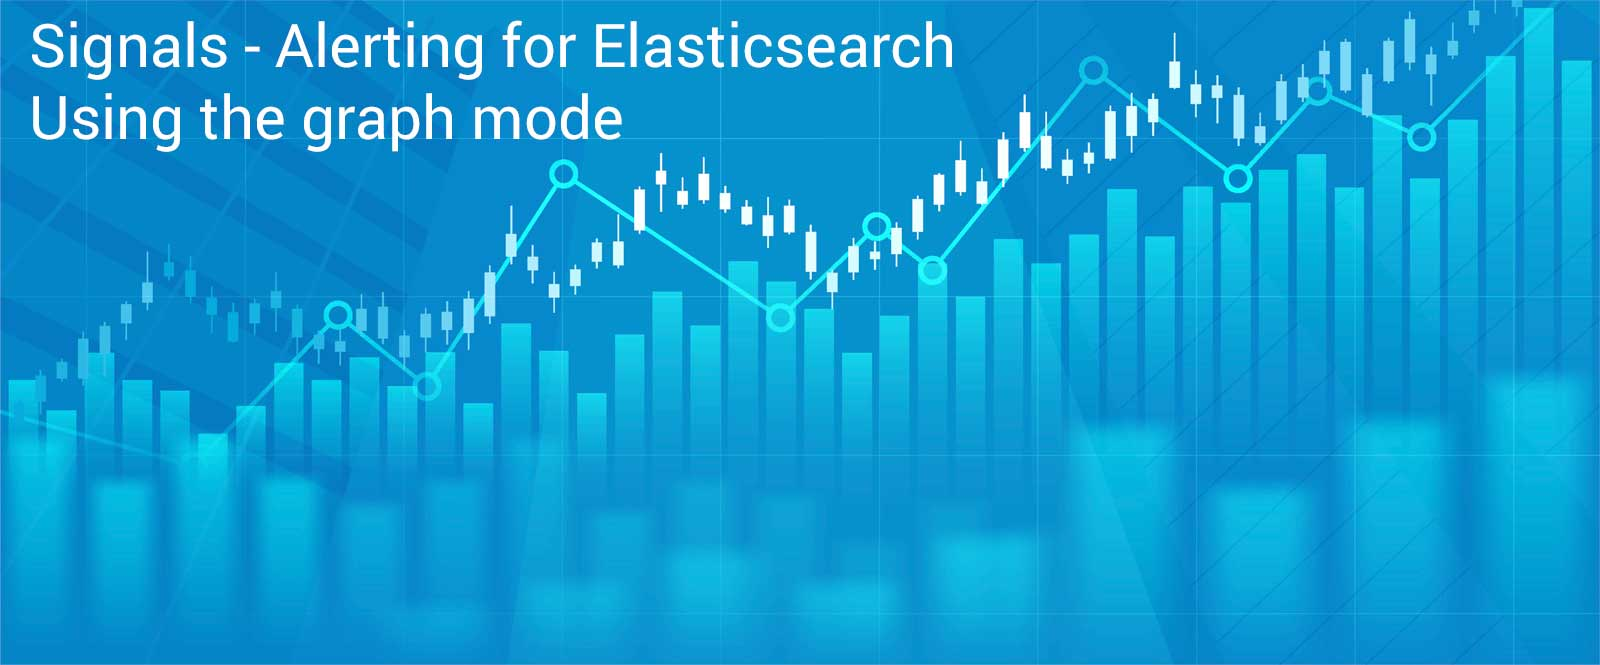 Alerting for Elasticsearch - Signals Graph Mode